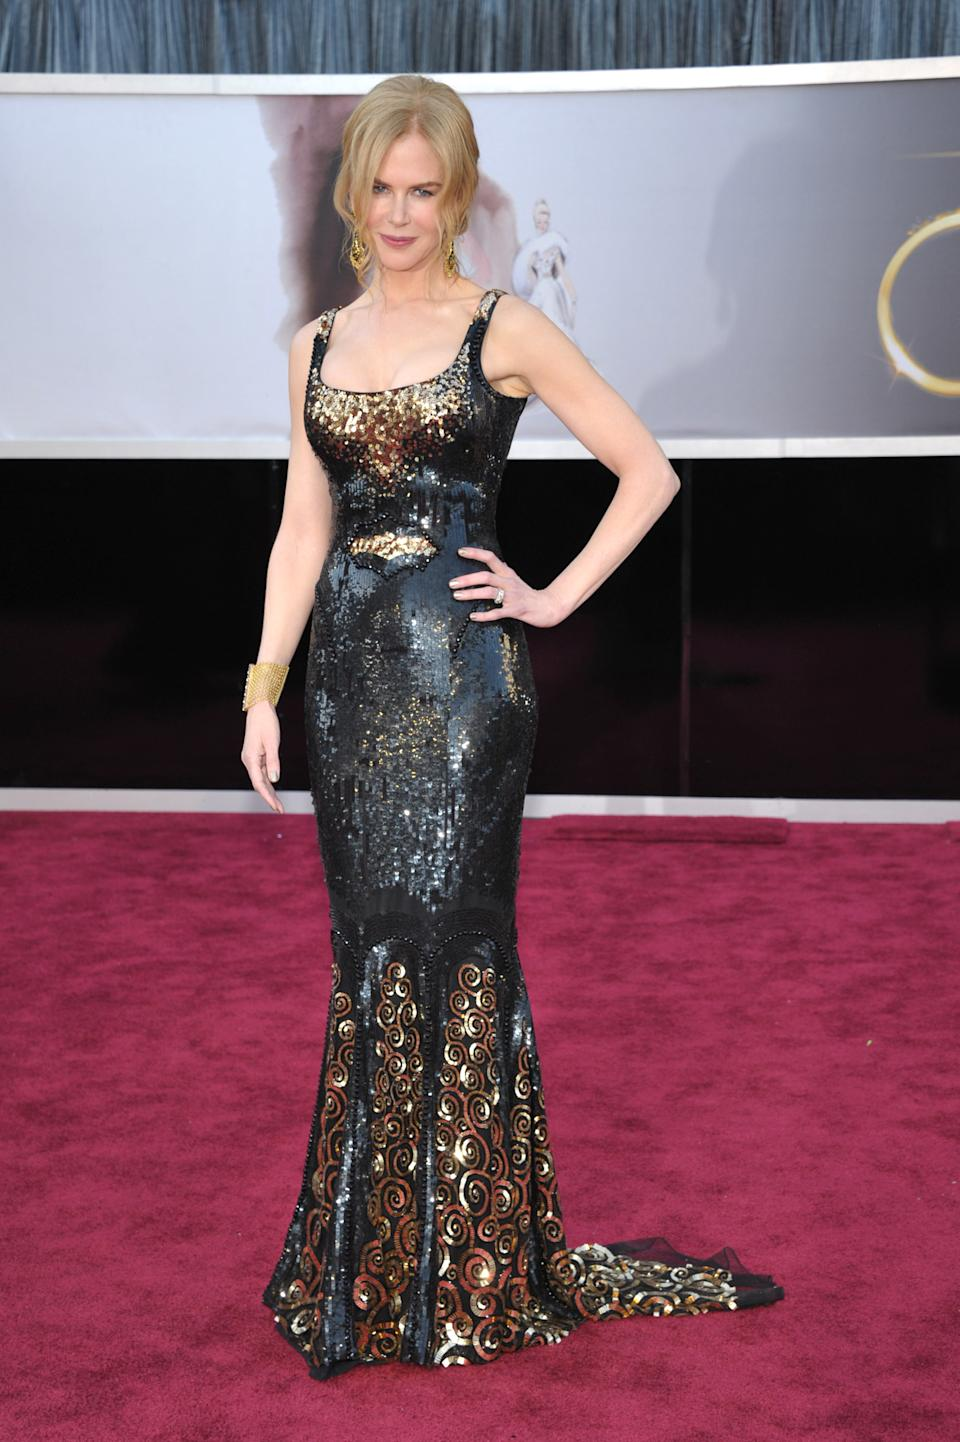 Actress Nicole Kidman arrives at the Oscars at the Dolby Theatre on Sunday Feb. 24, 2013, in Los Angeles. (Photo by John Shearer/Invision/AP)